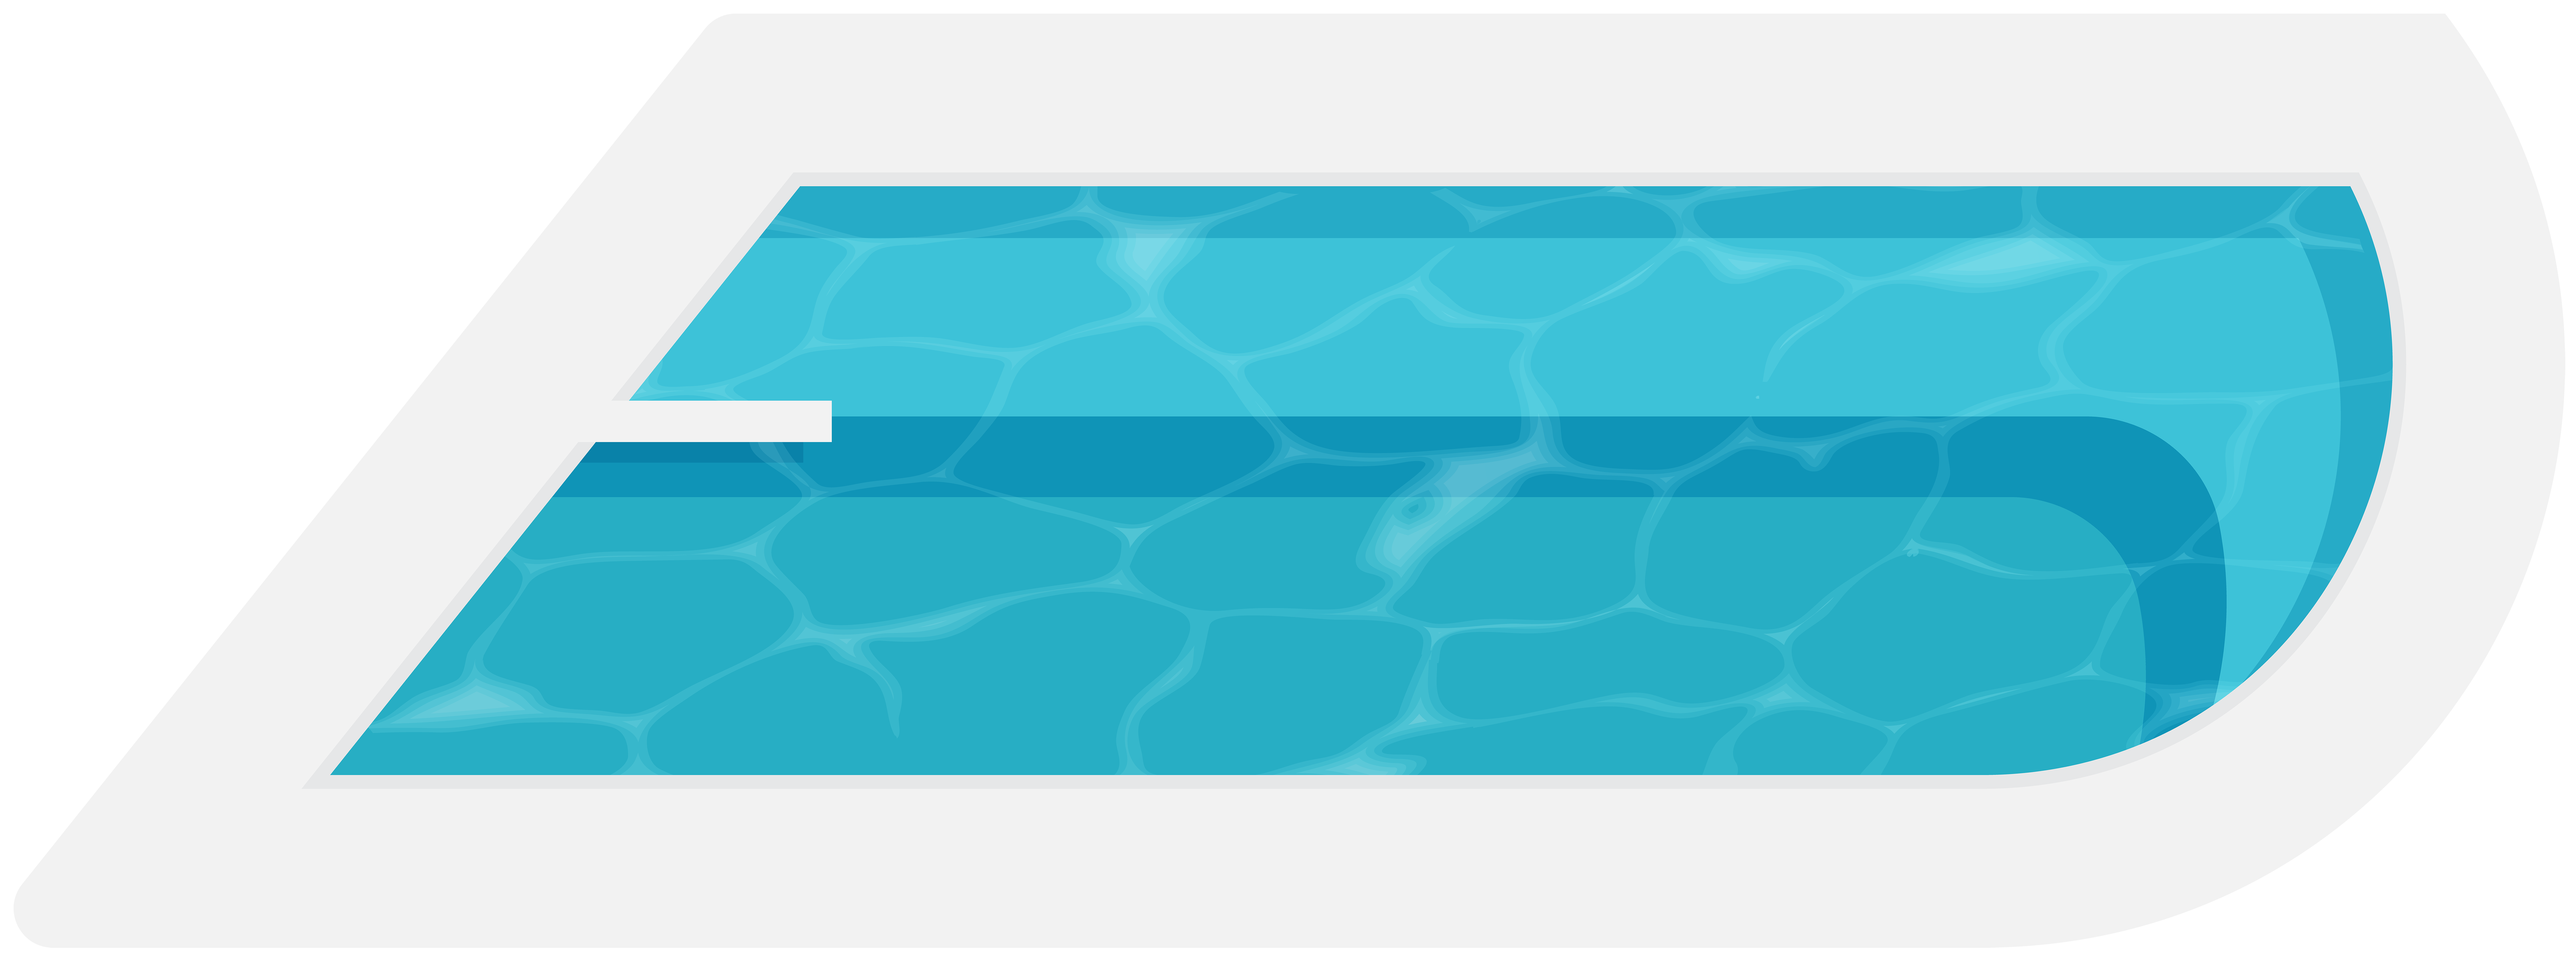 Drinks clipart pool. Swimming png clip art